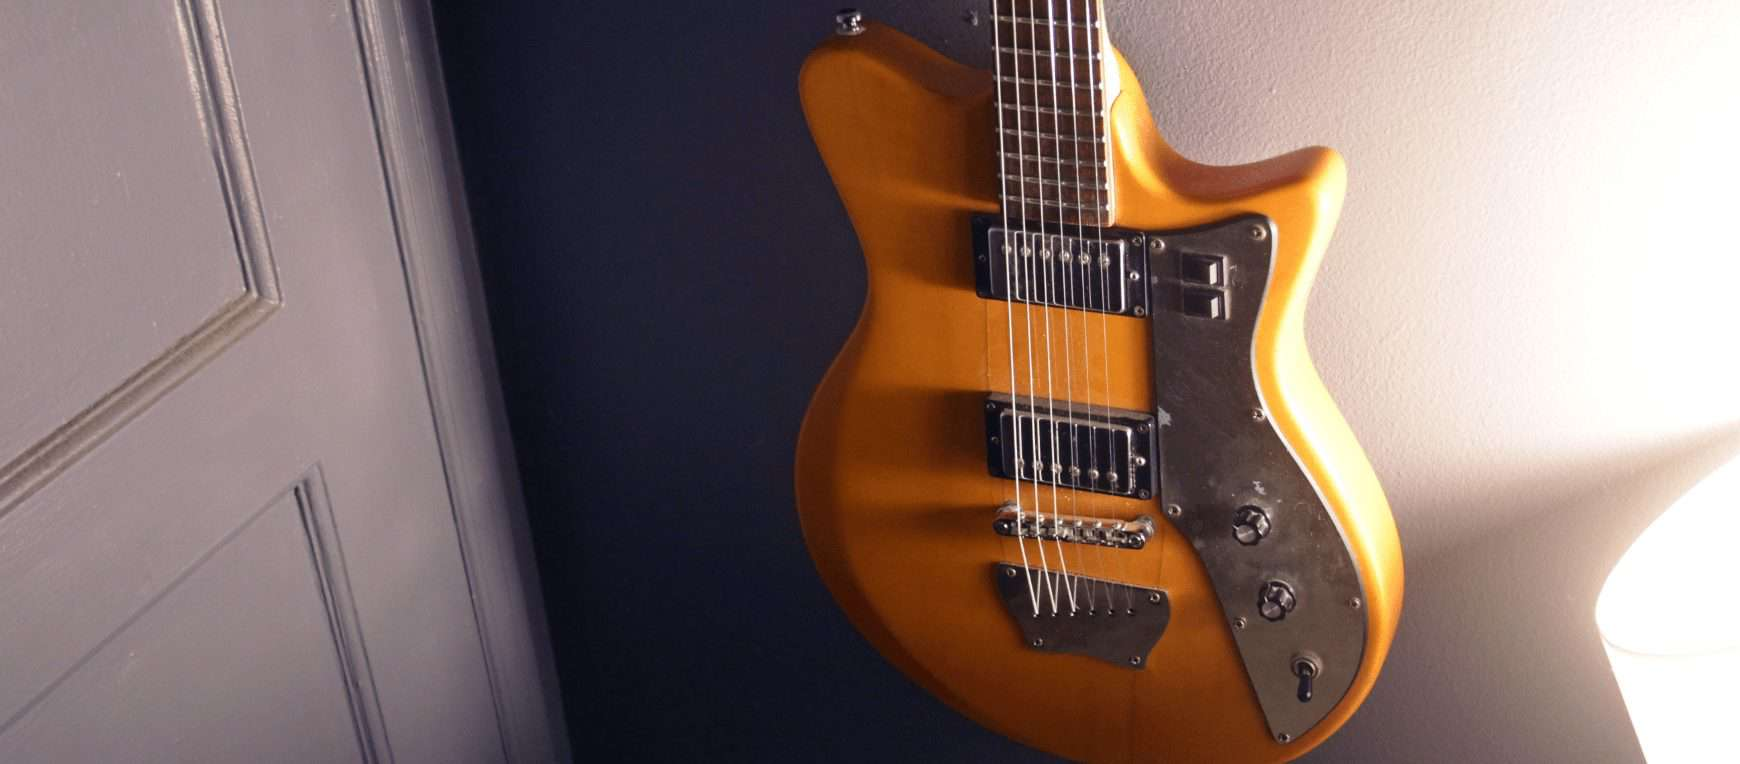 Should You Customize Your Guitar Strings?